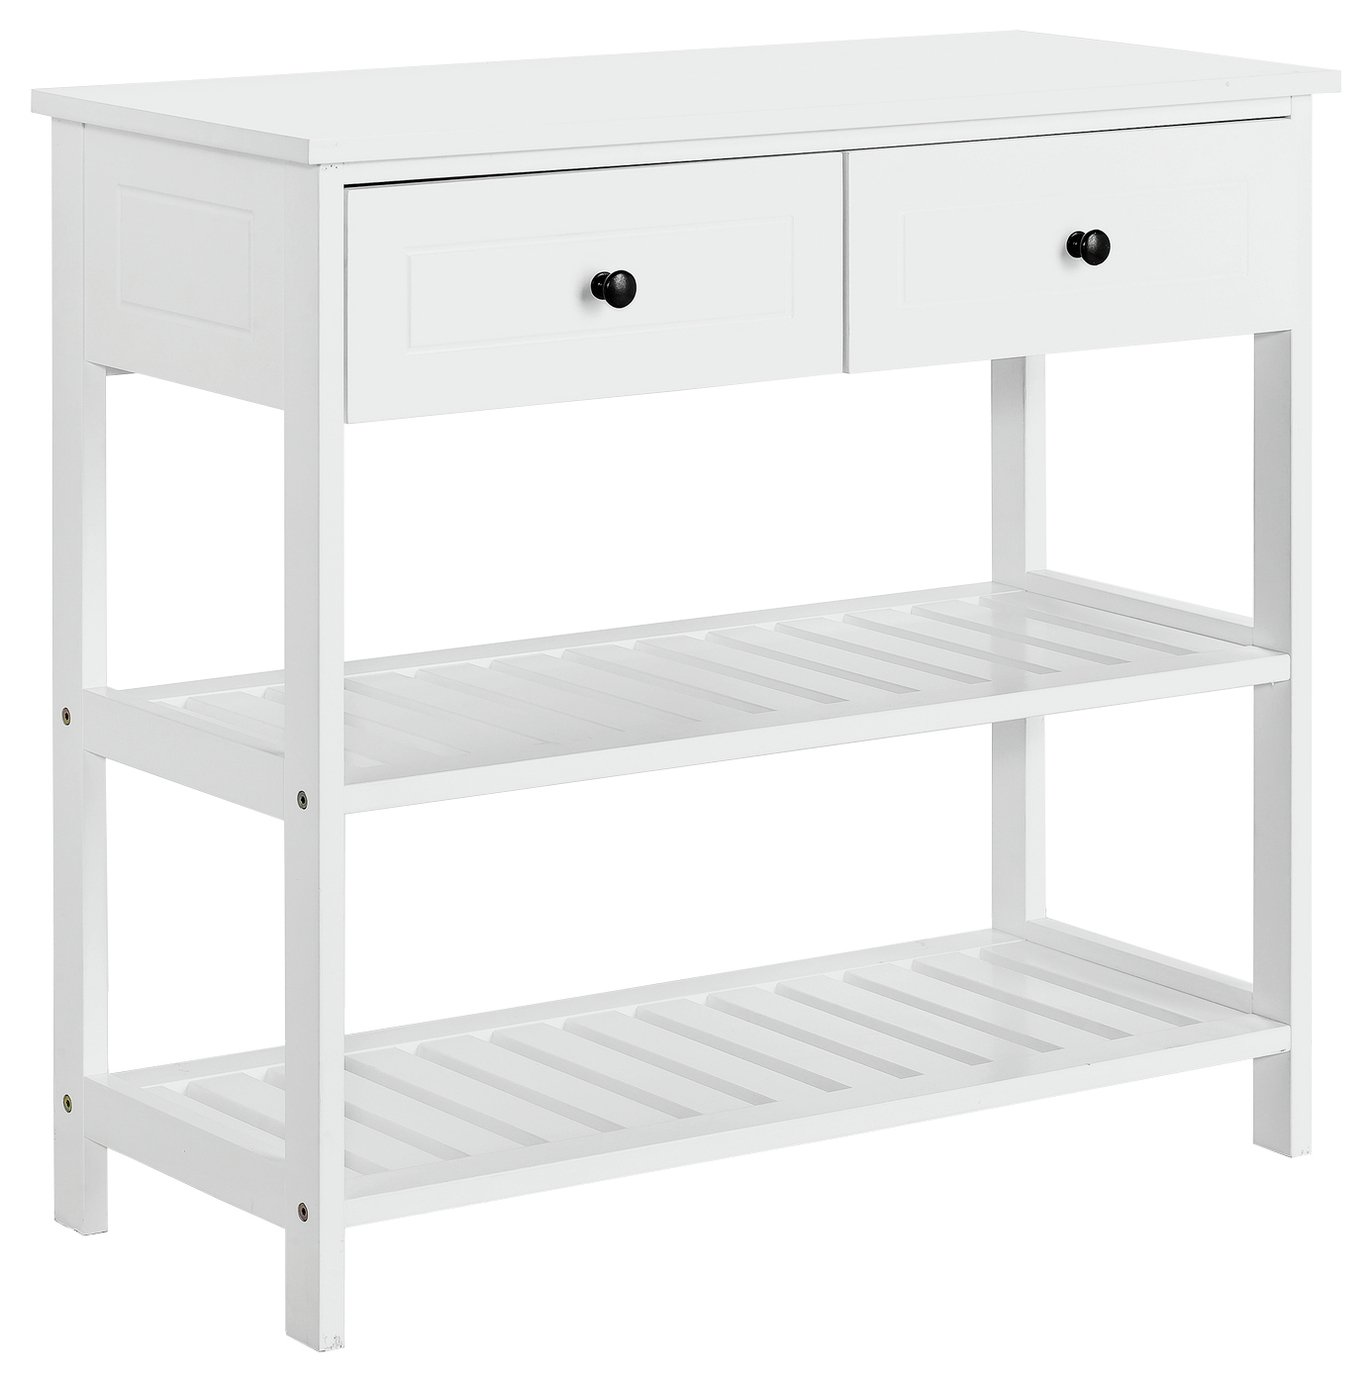 Image of HOME 2 Drawer Console Table - White